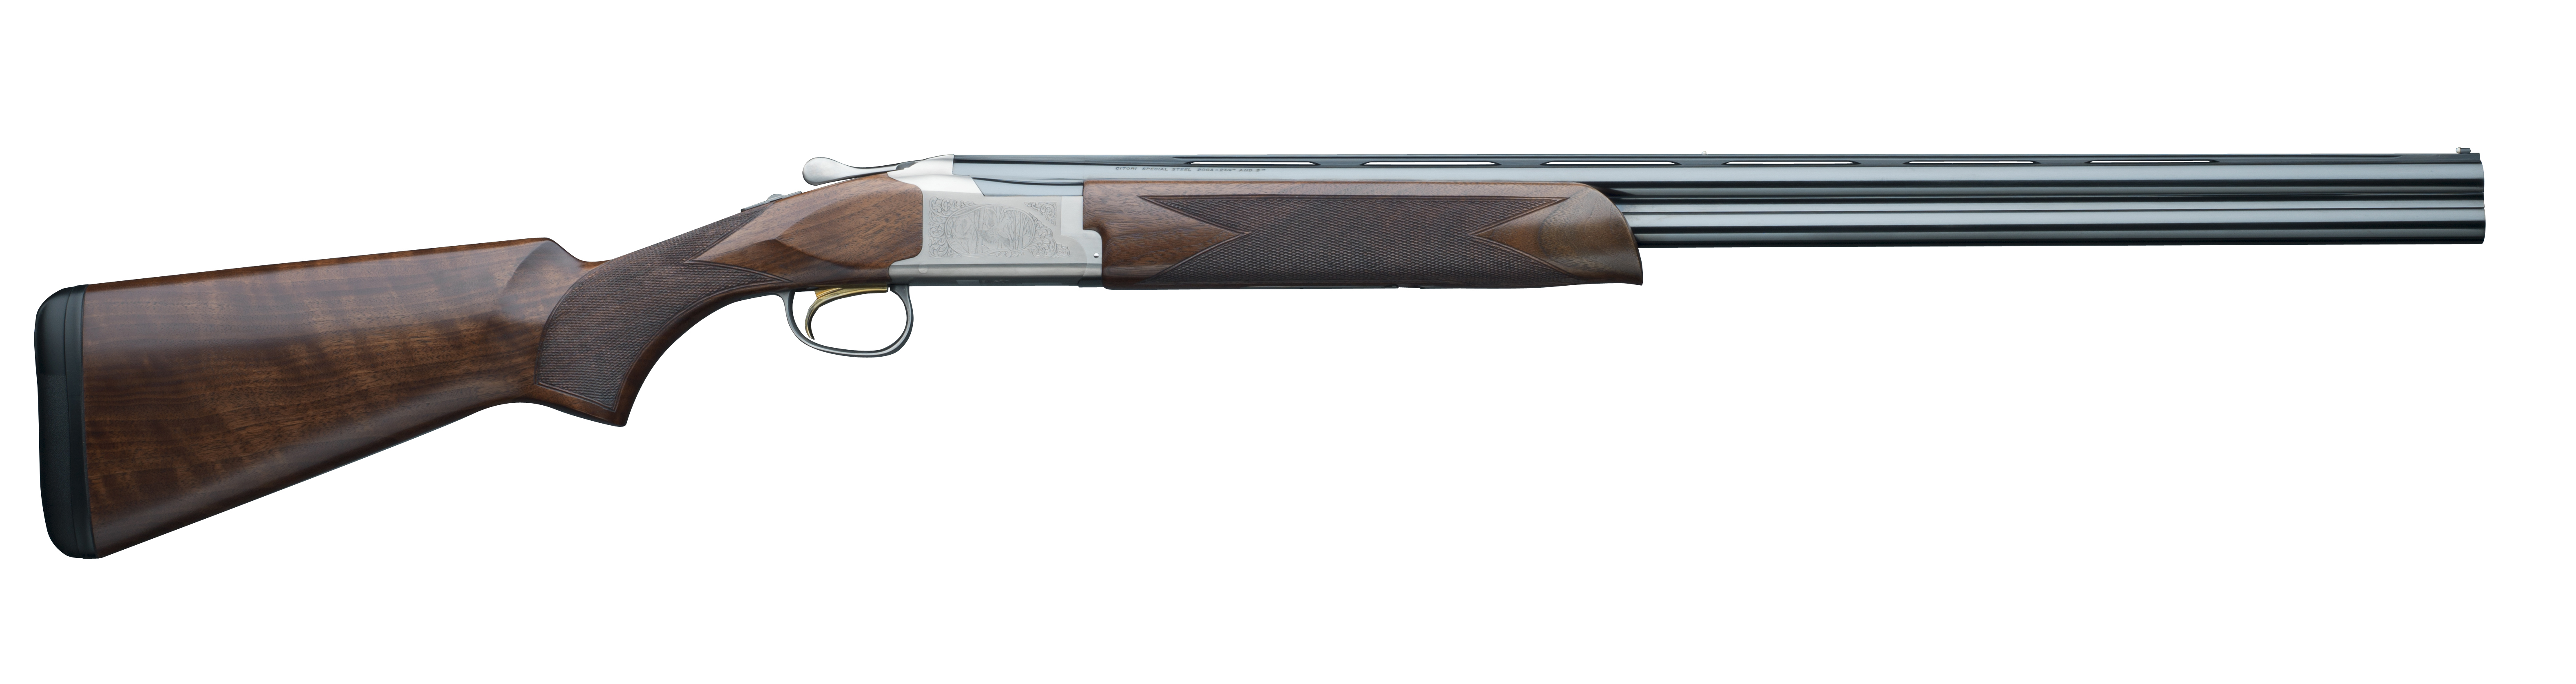 Browning Adds 20 Gauge Models to Citori 725 Line of Over/Under Shotguns